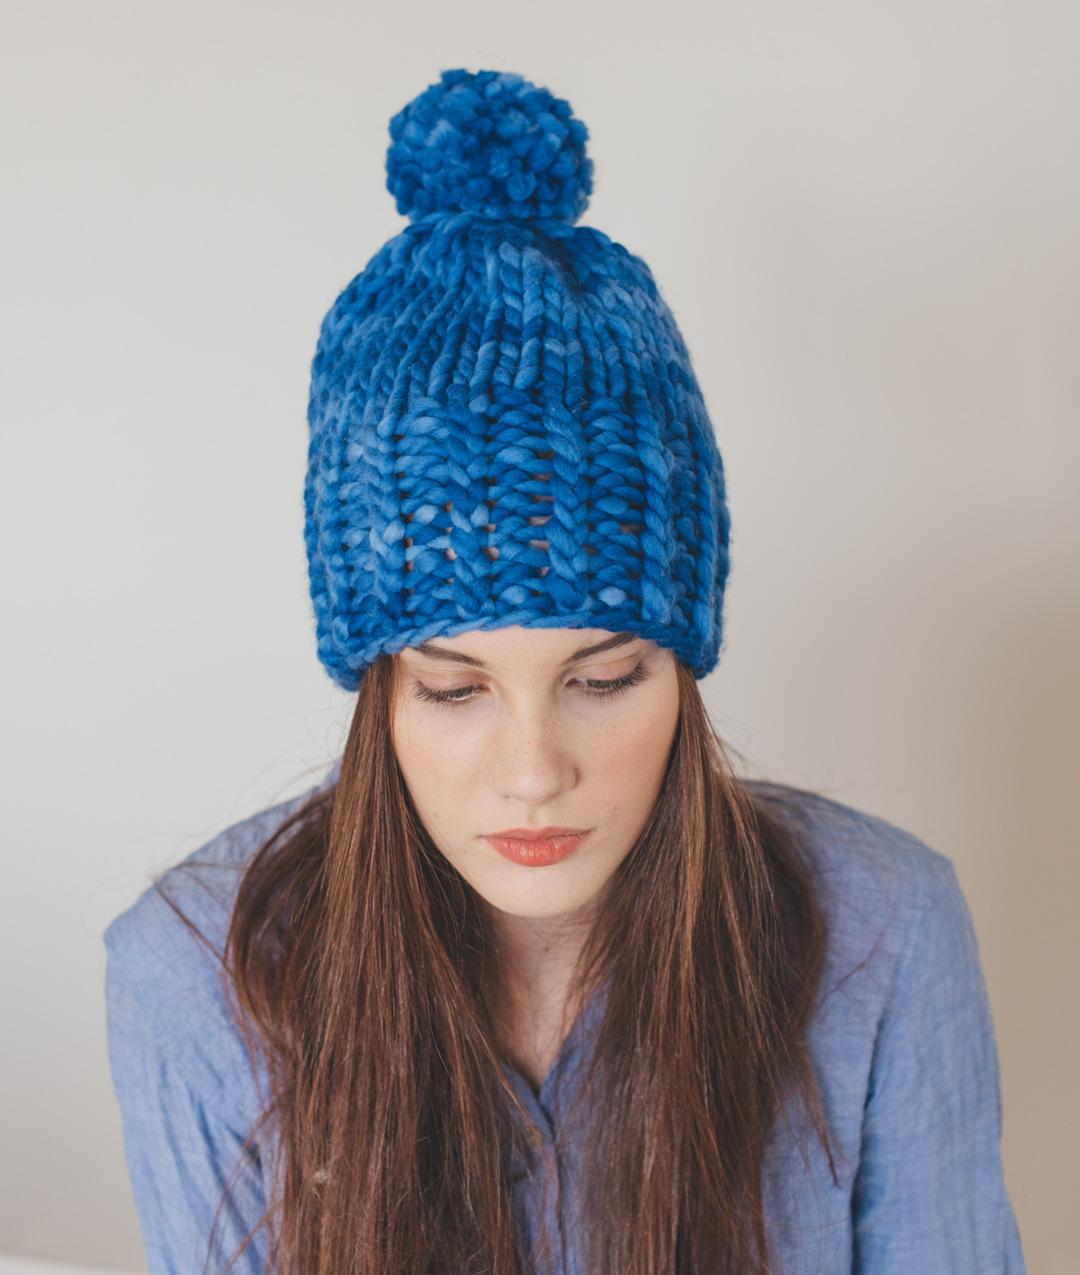 Hats and Beanies - Wool - Rib Twisted Beanie - 1